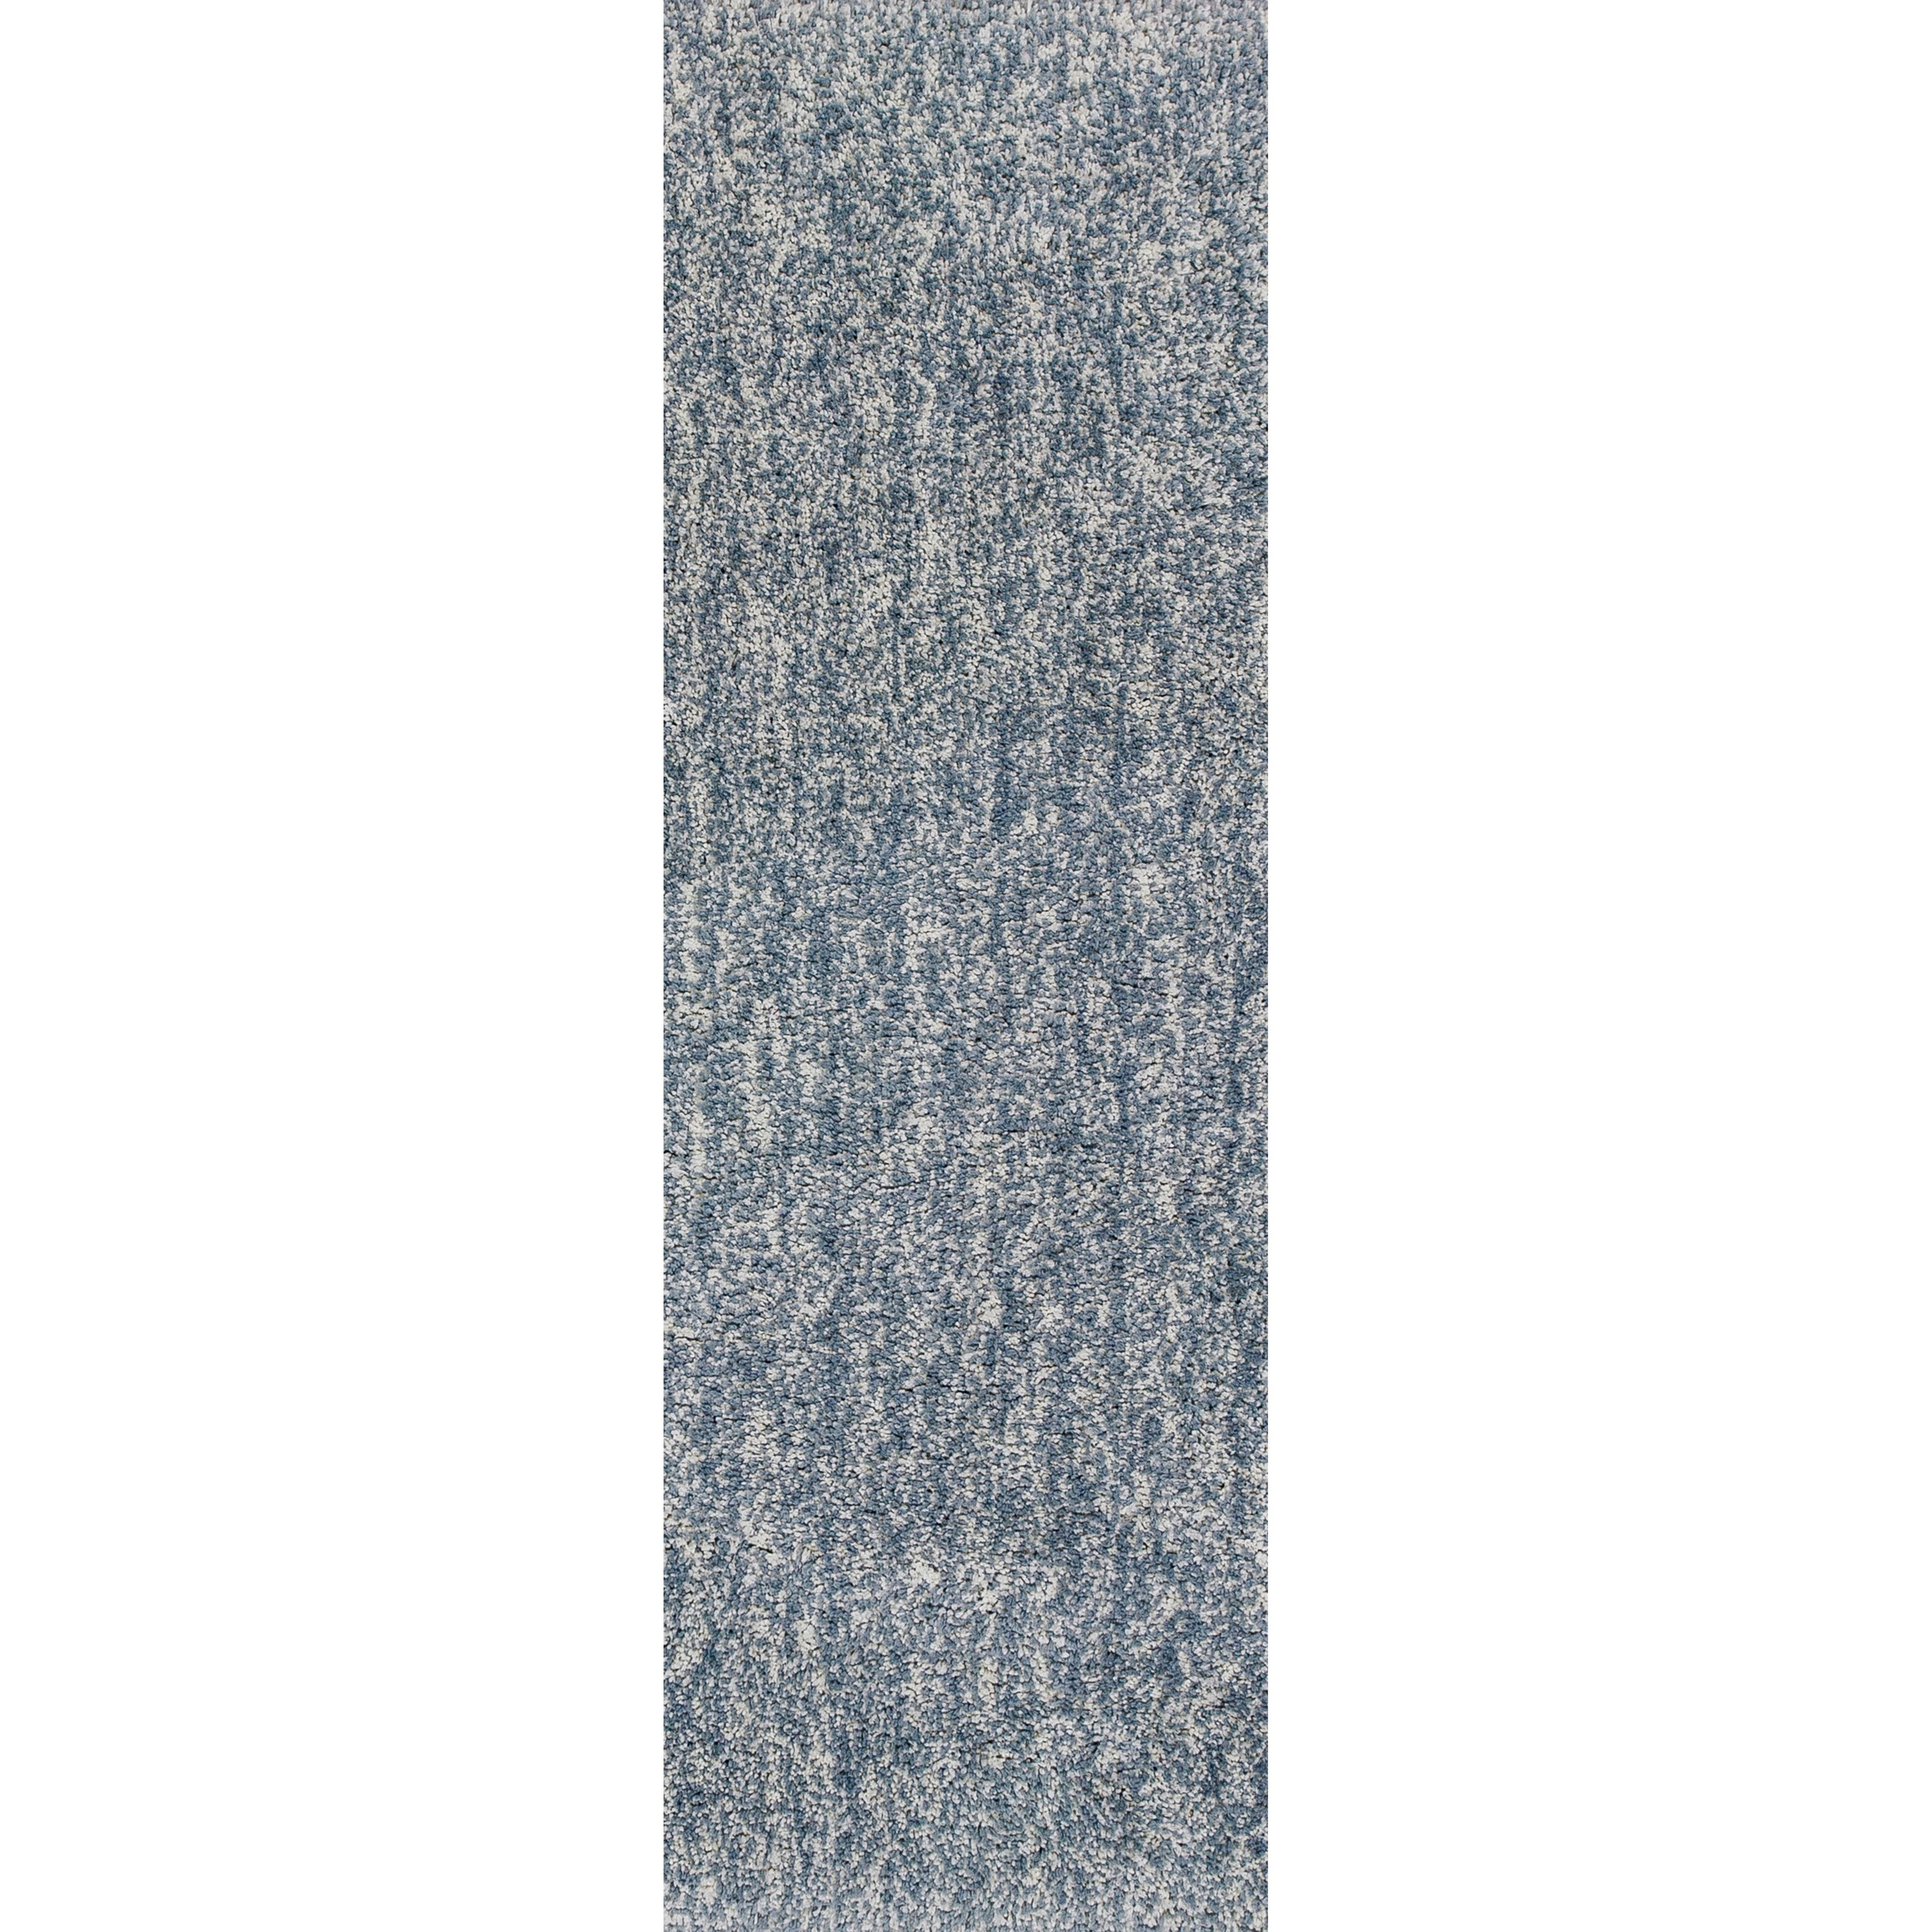 """Bliss 2'3"""" X 7'6"""" Slate Heather Shag Area Rug by Kas at Zak's Home"""